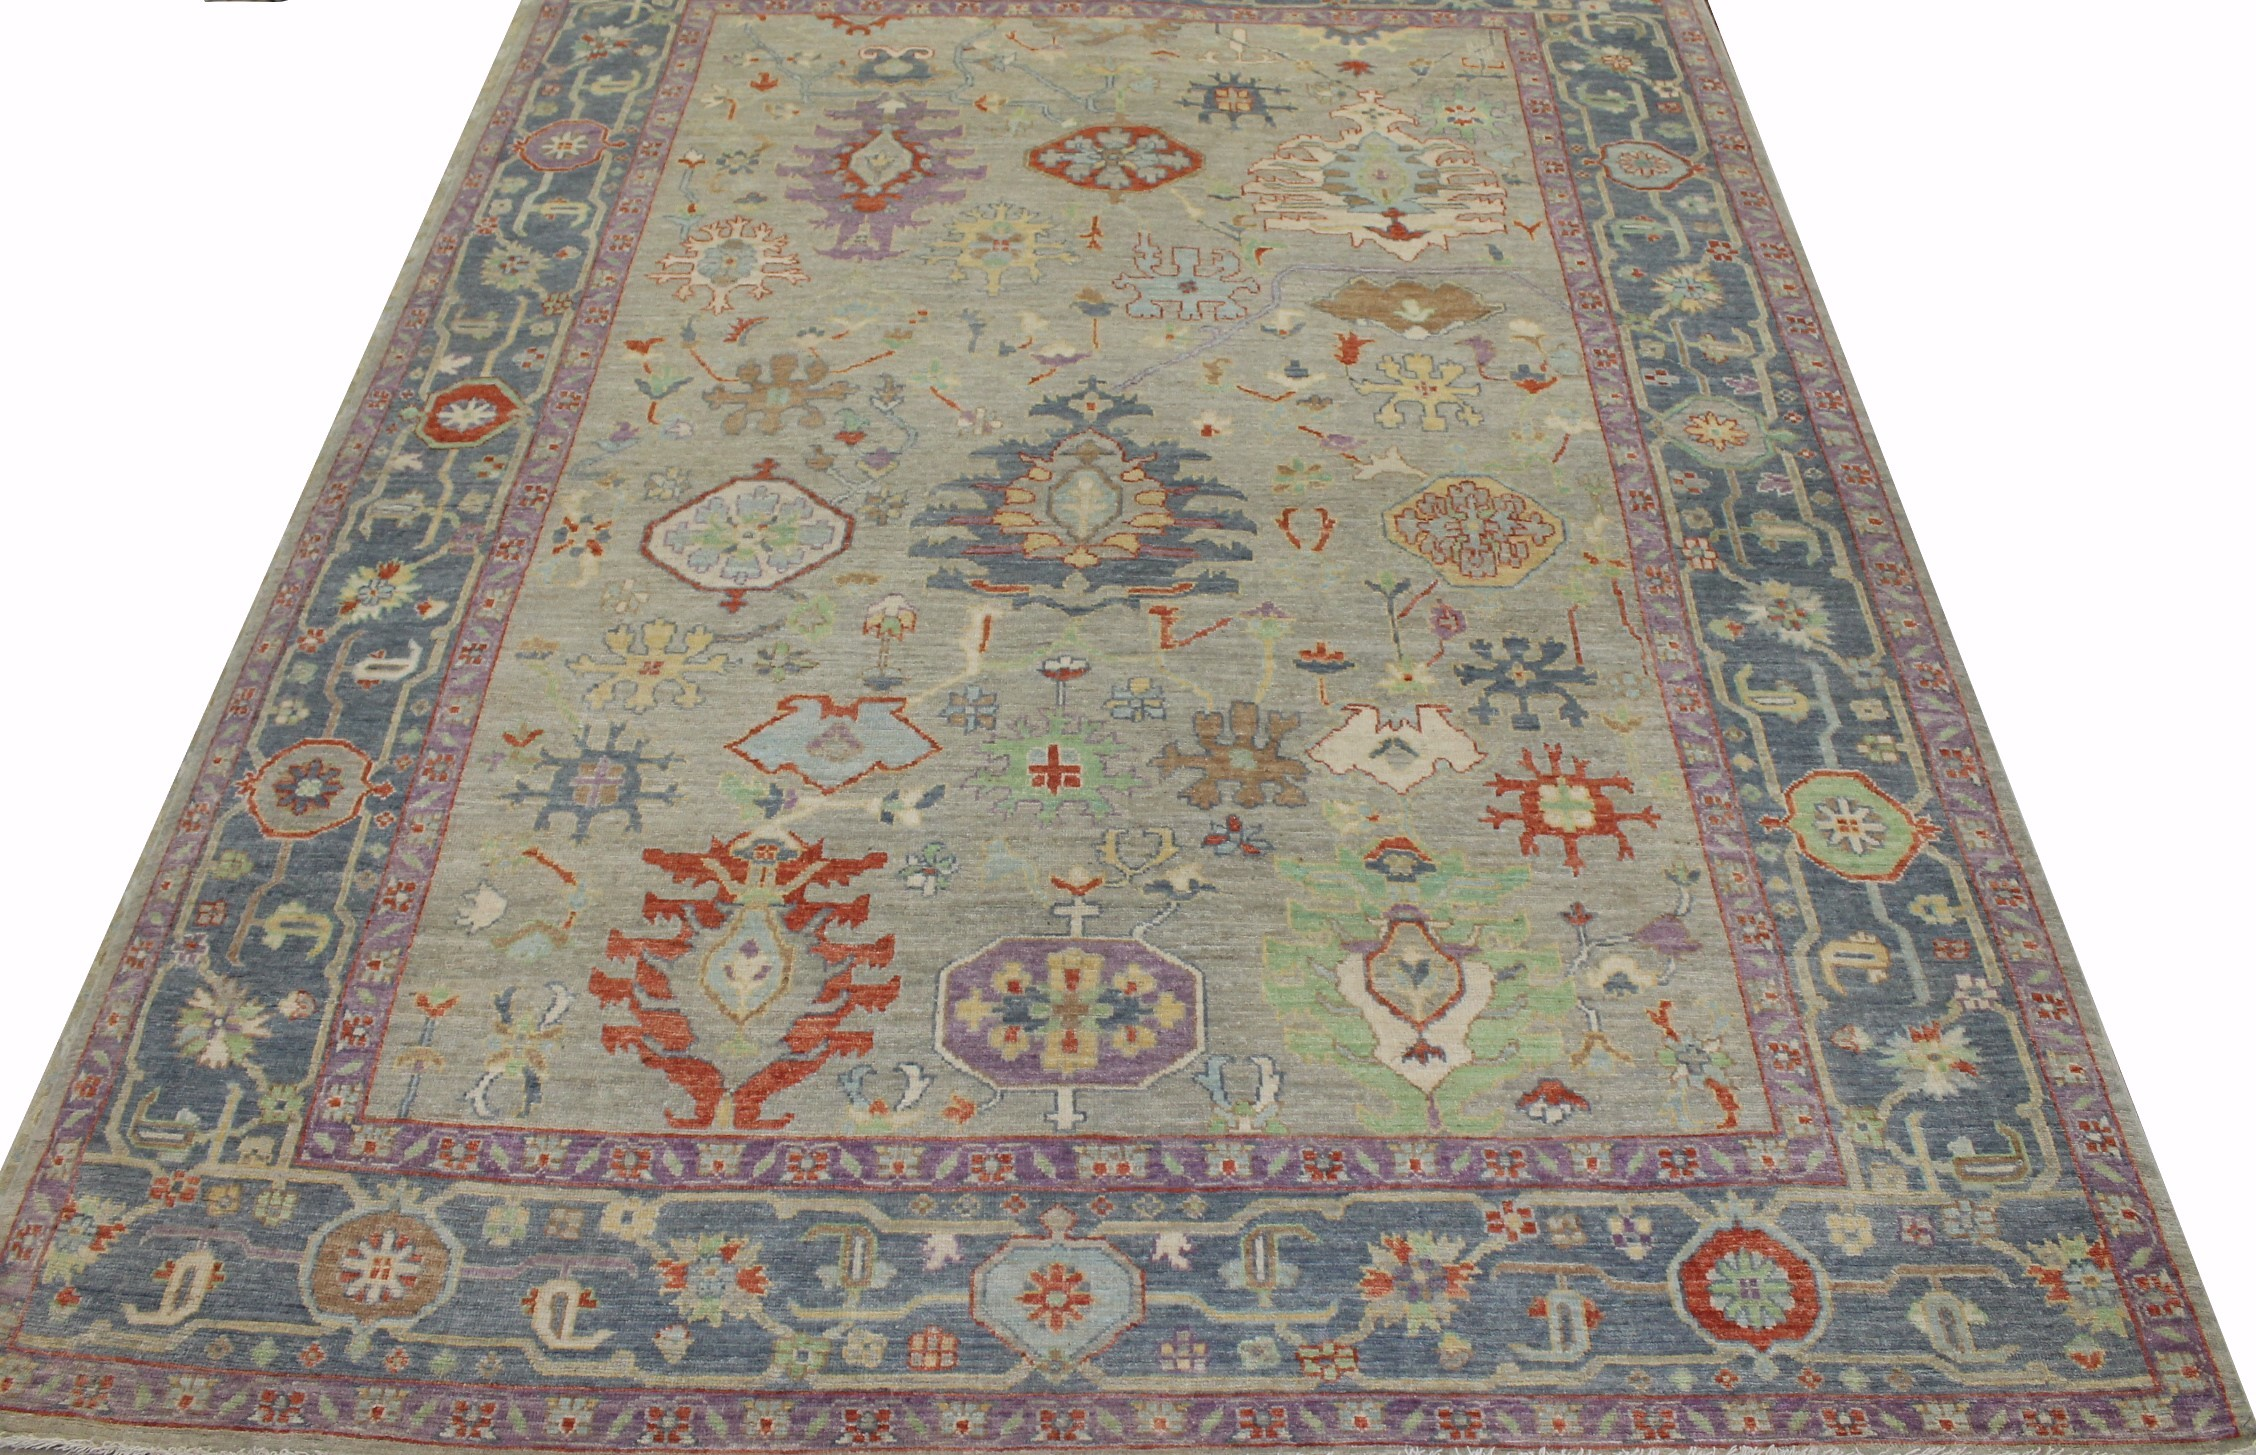 9x12 Oushak Hand Knotted Wool Area Rug - MR023357